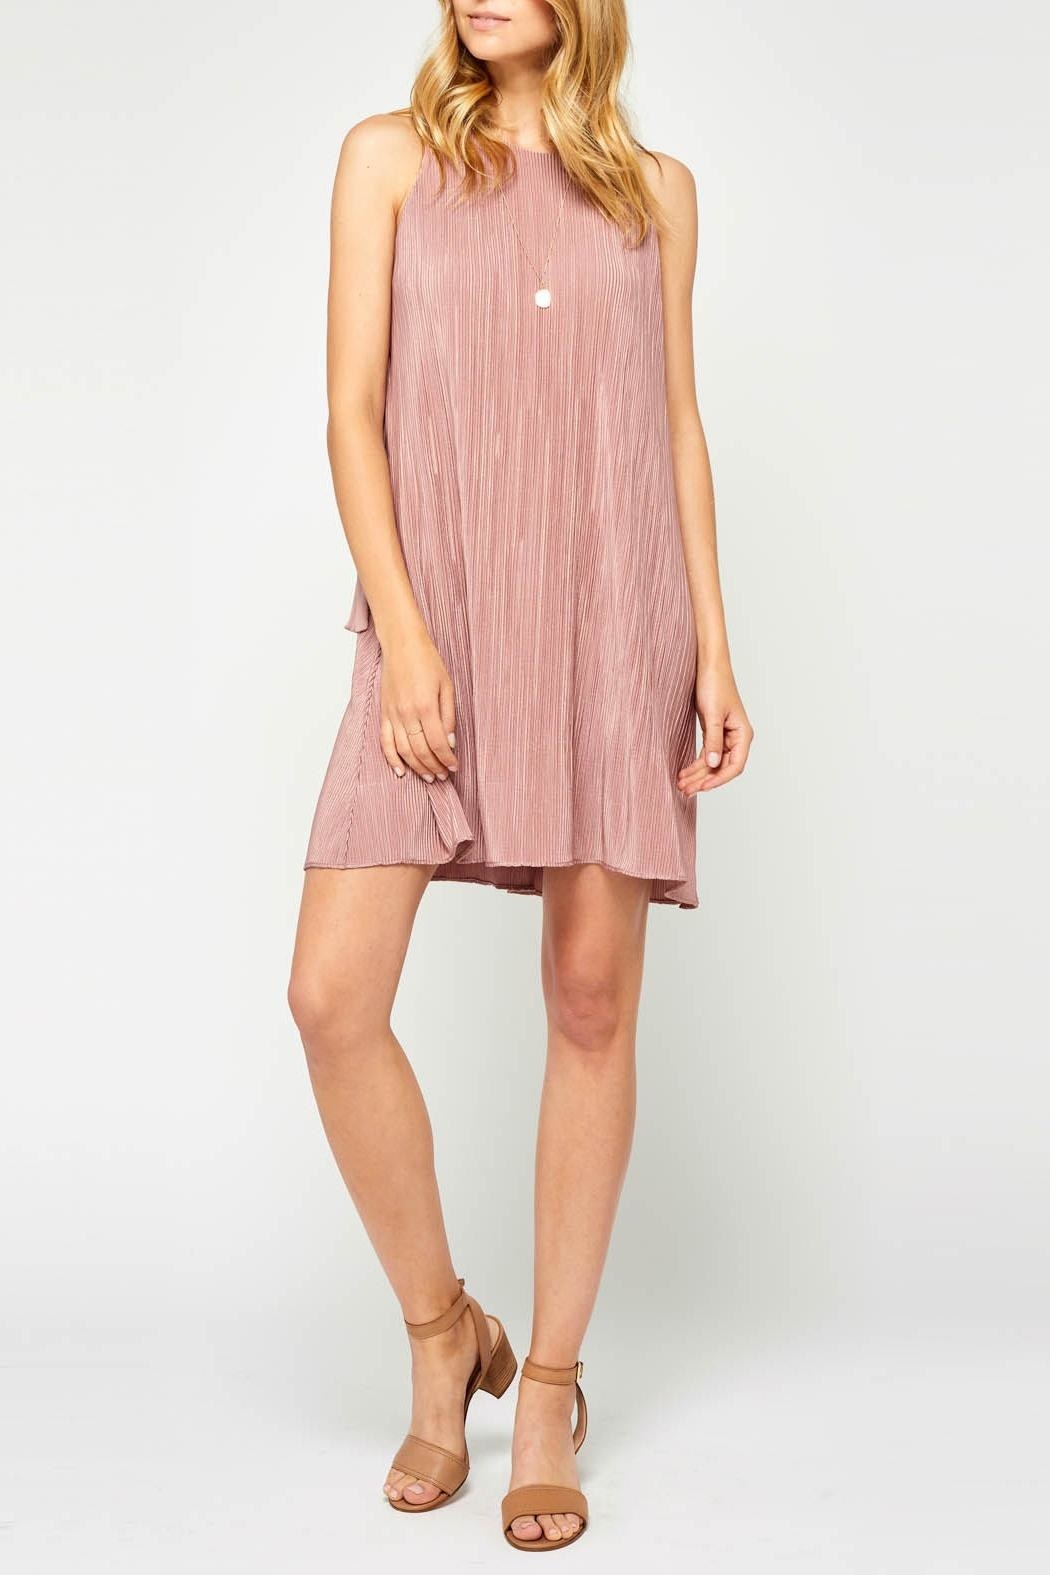 Gentle Fawn Renee Dress - Front Full Image